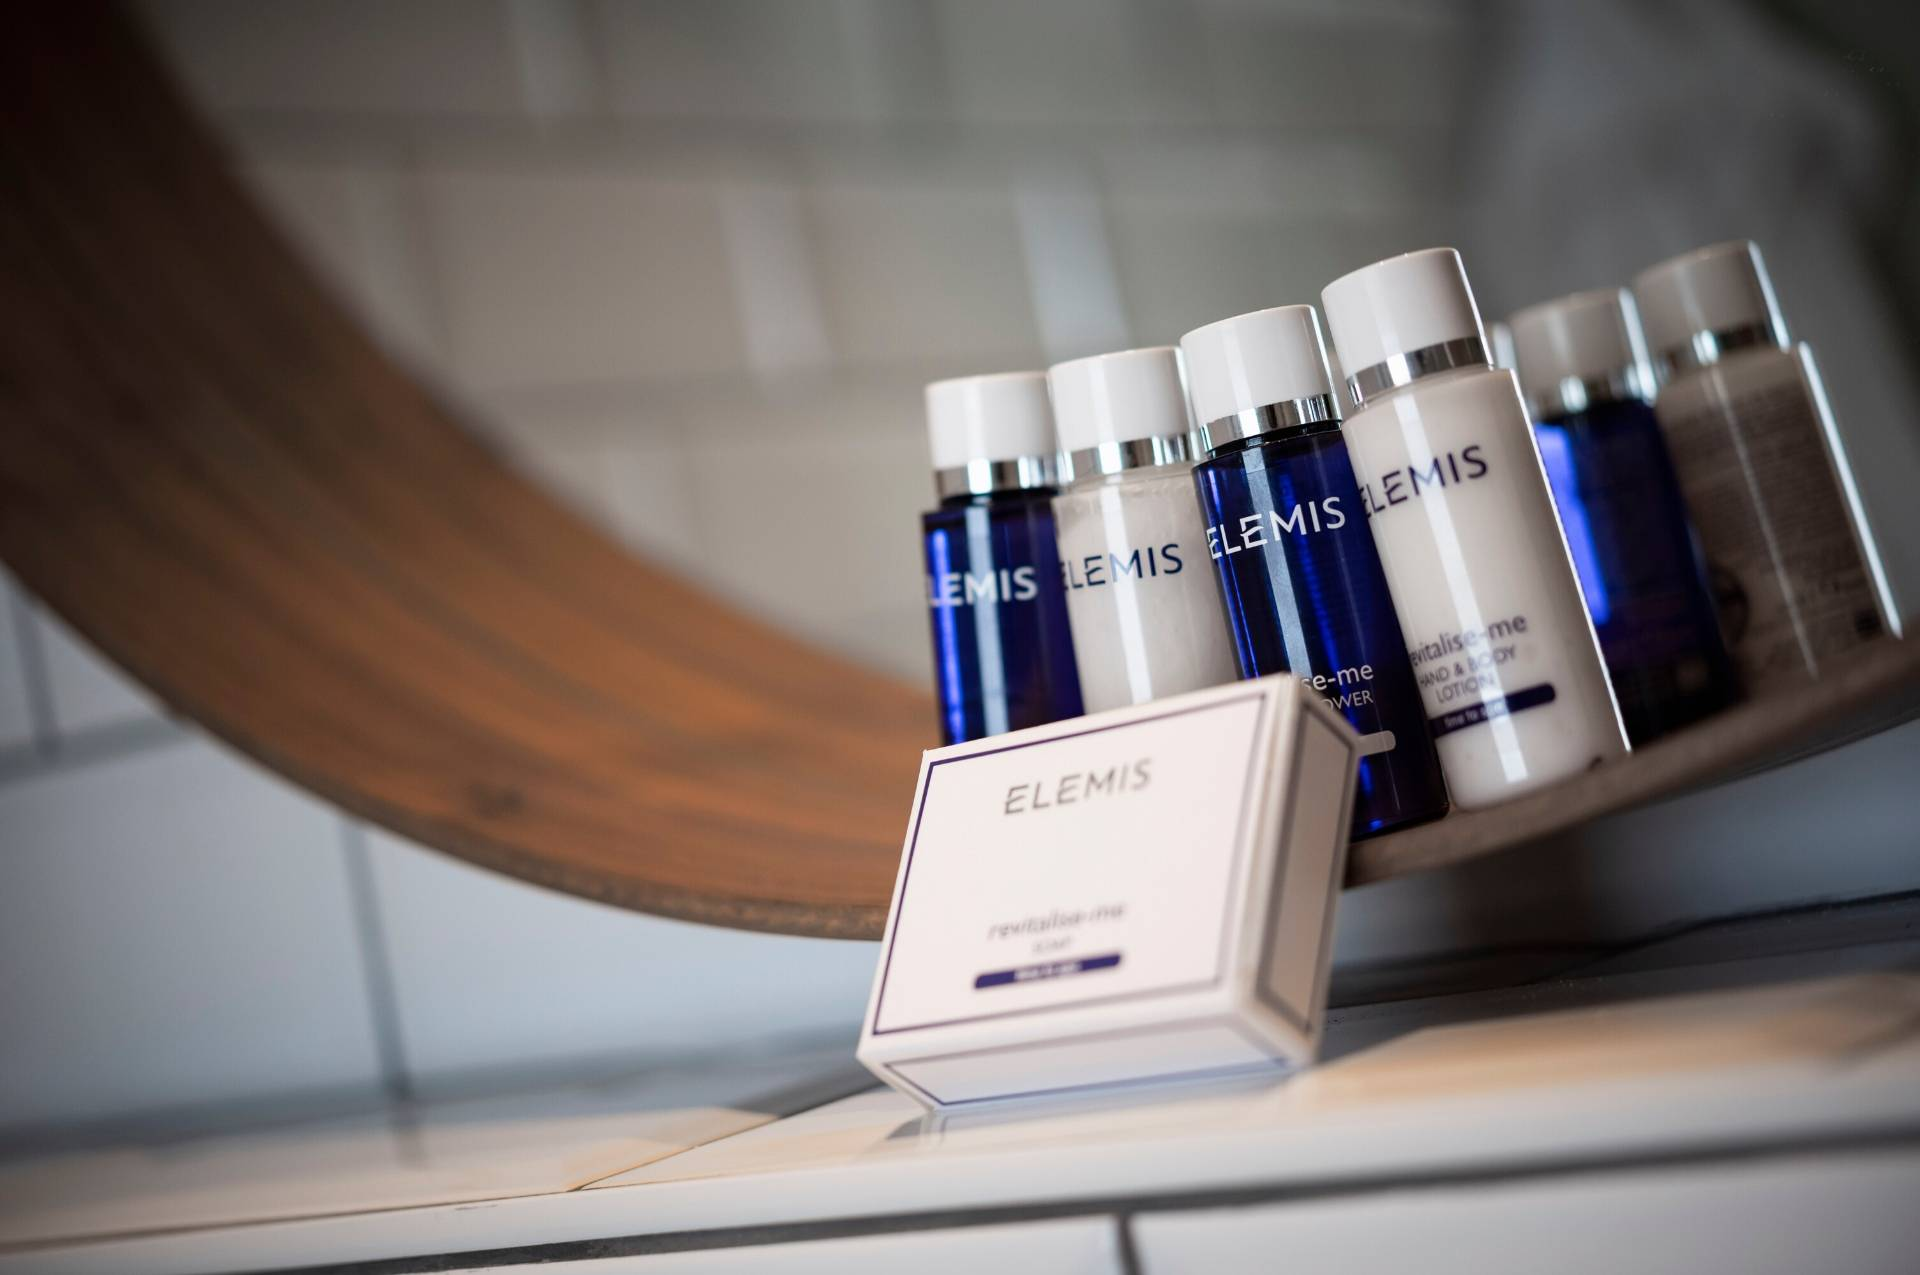 Selection of Elemis products PREMIER SUITES Antwerp